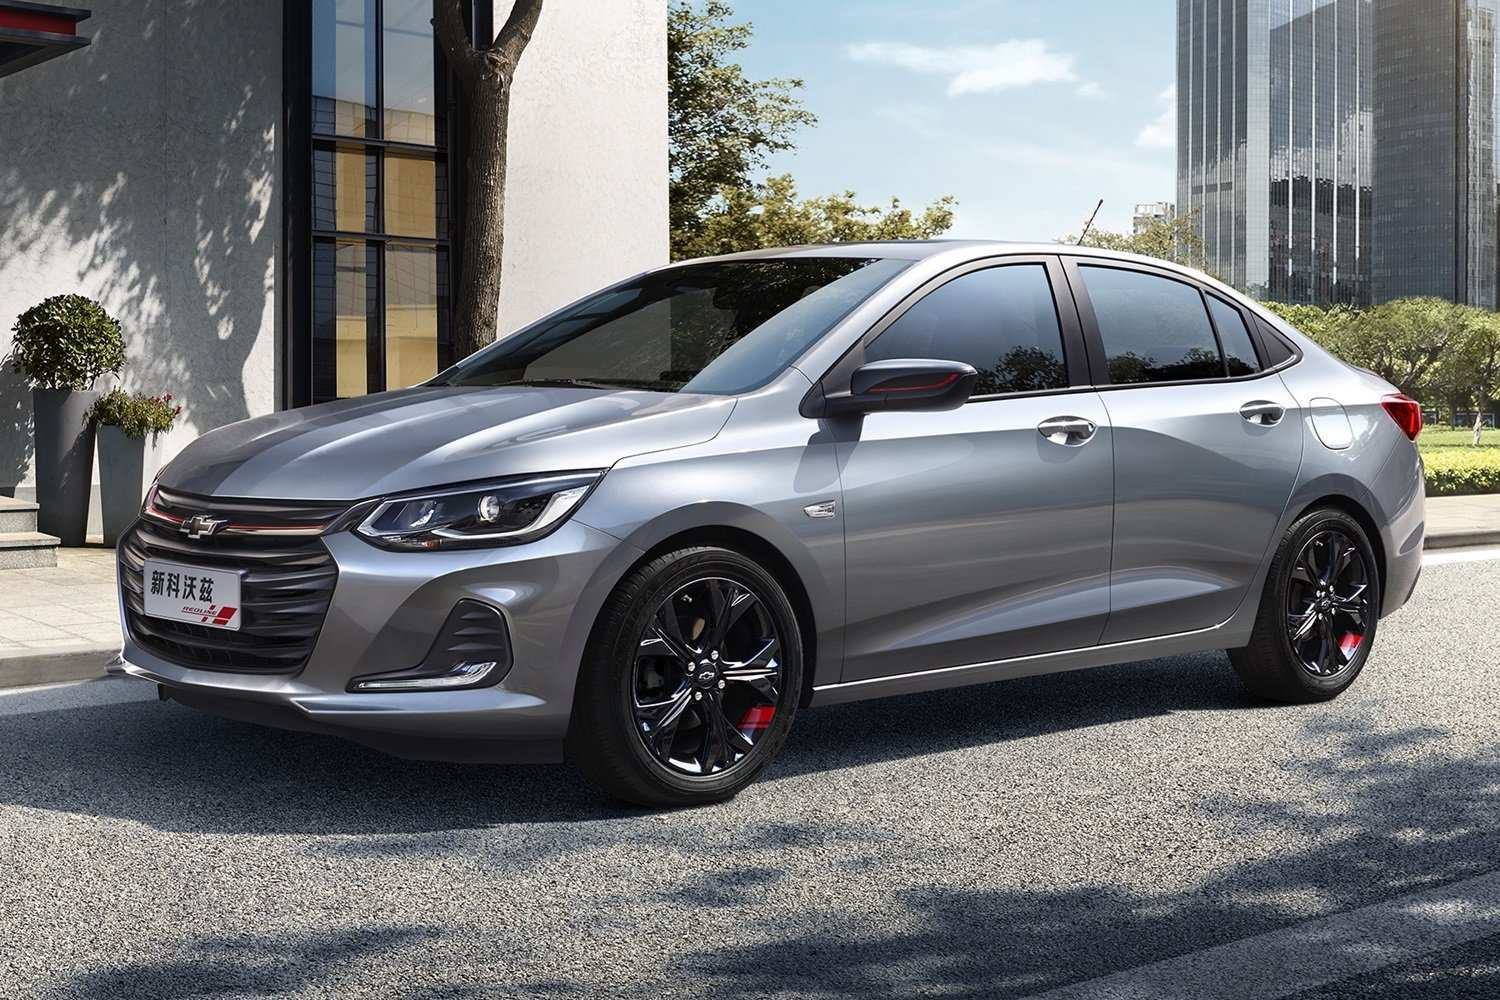 25 All New Chevrolet Onix Joy 2020 Configurations